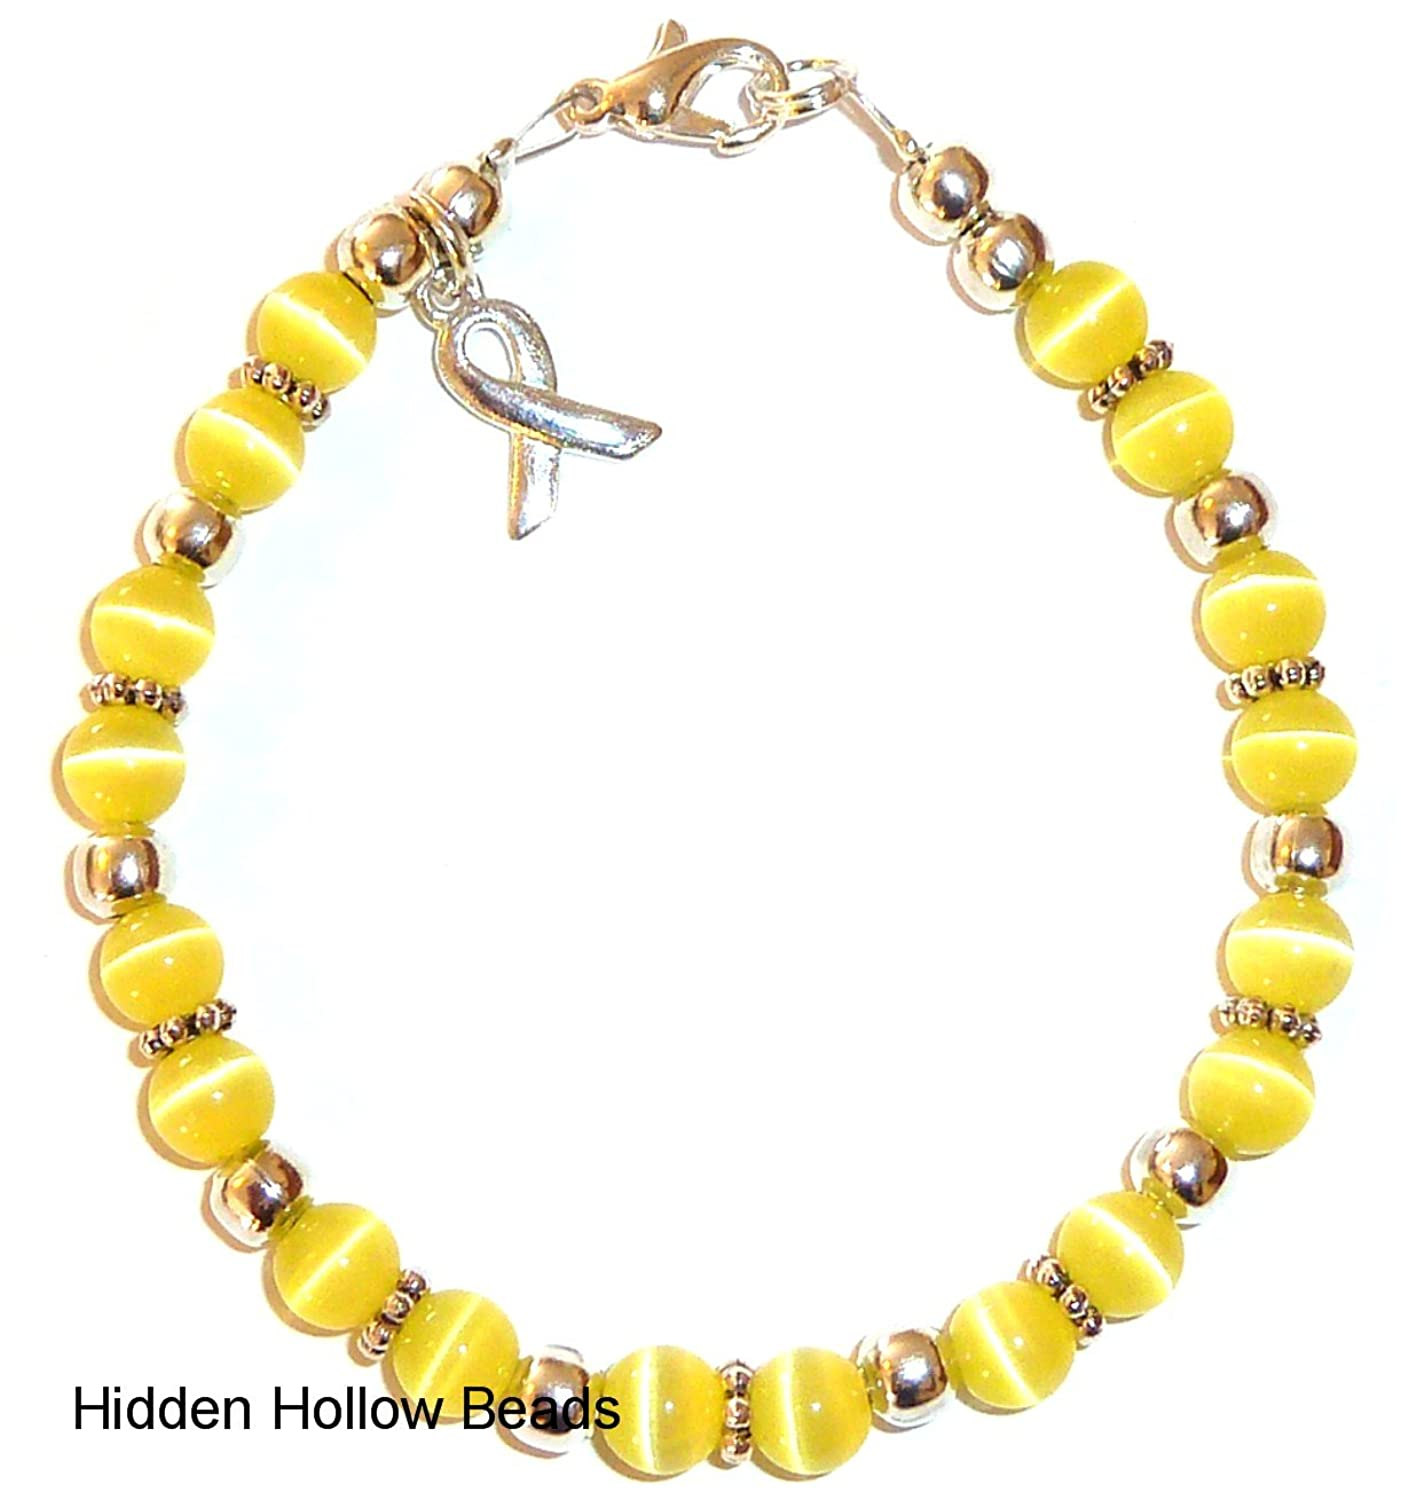 jewelry com spina beads campaign fundraising awareness and or dp bracelet hidden bladder bifida yellow amazon cancer by in sarcoma hollow